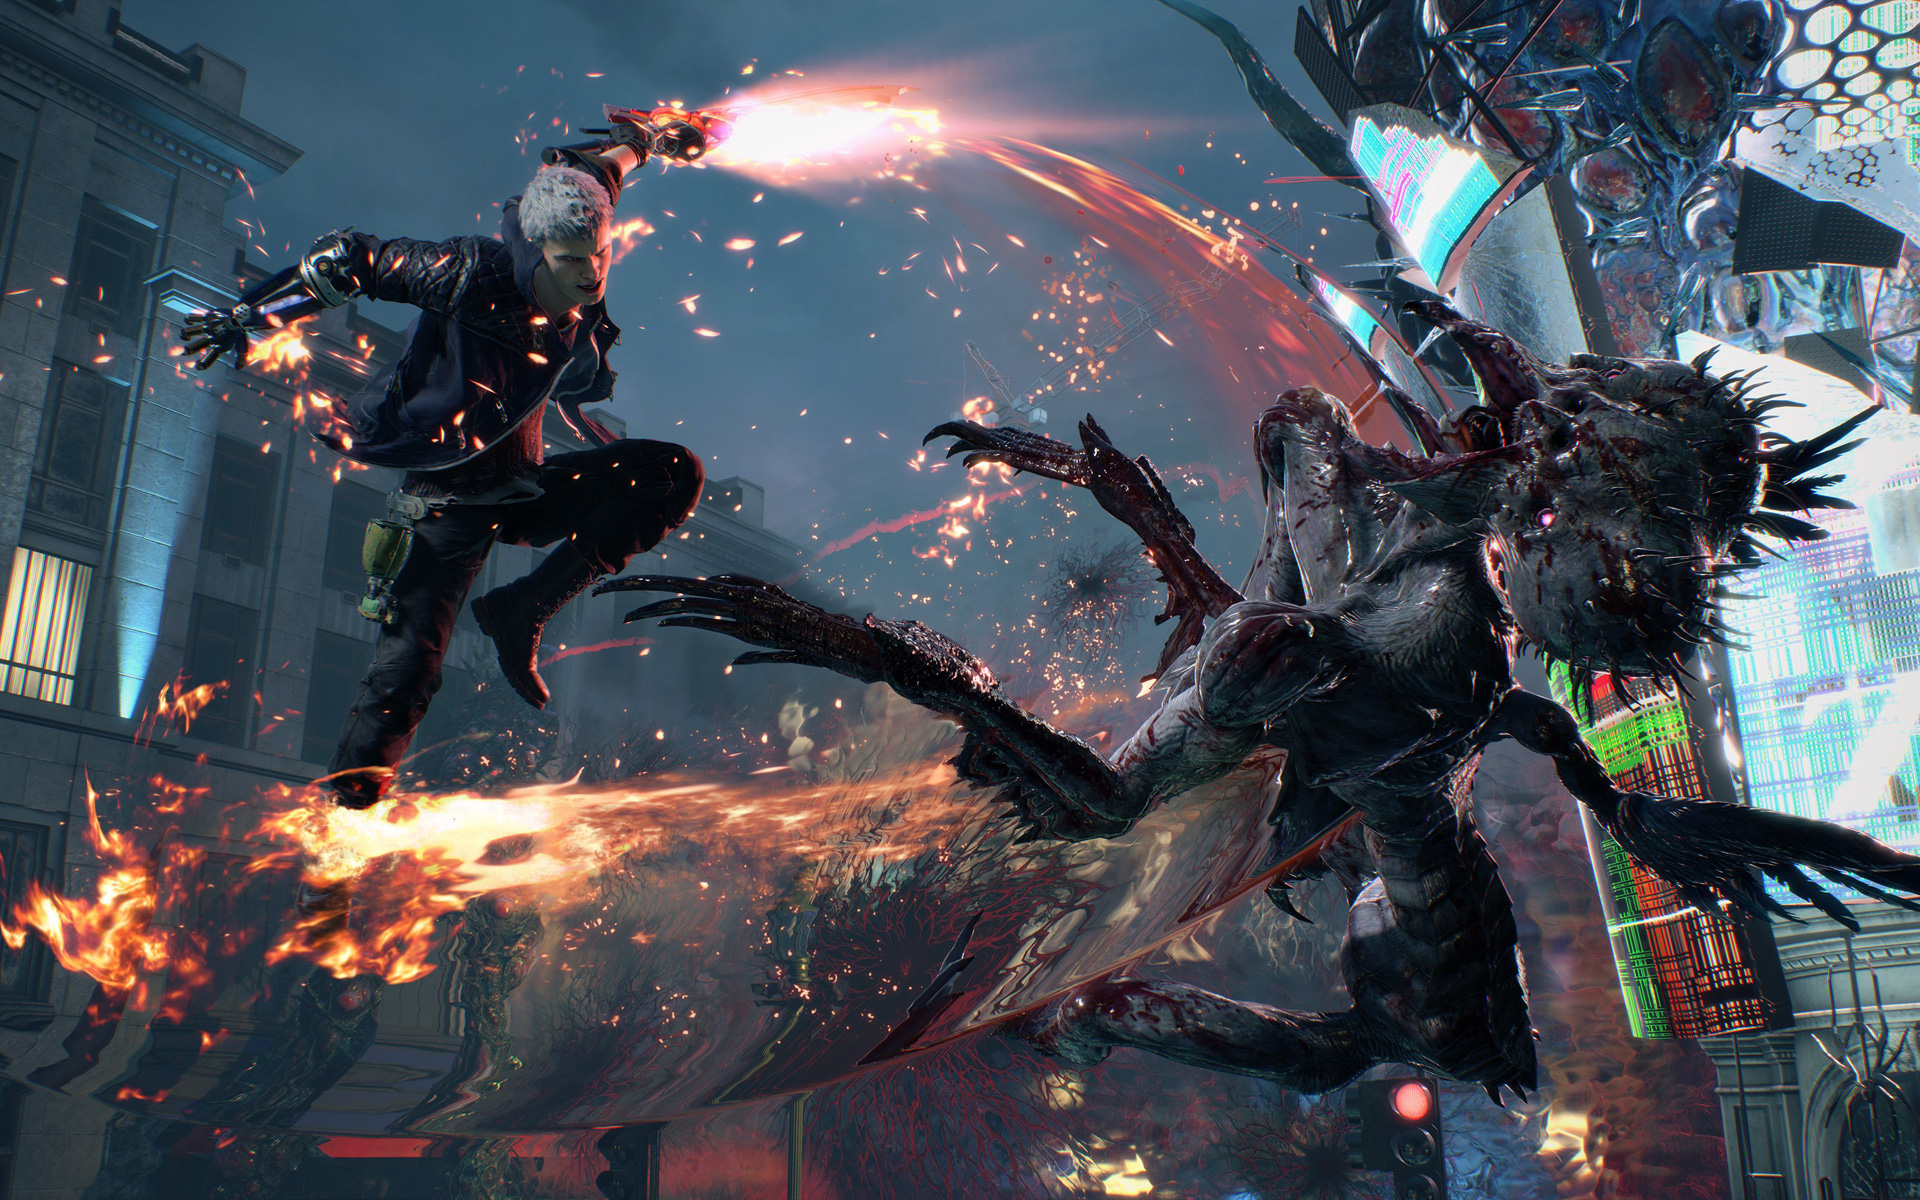 Free Devil May Cry 5 Wallpaper in 1920x1200